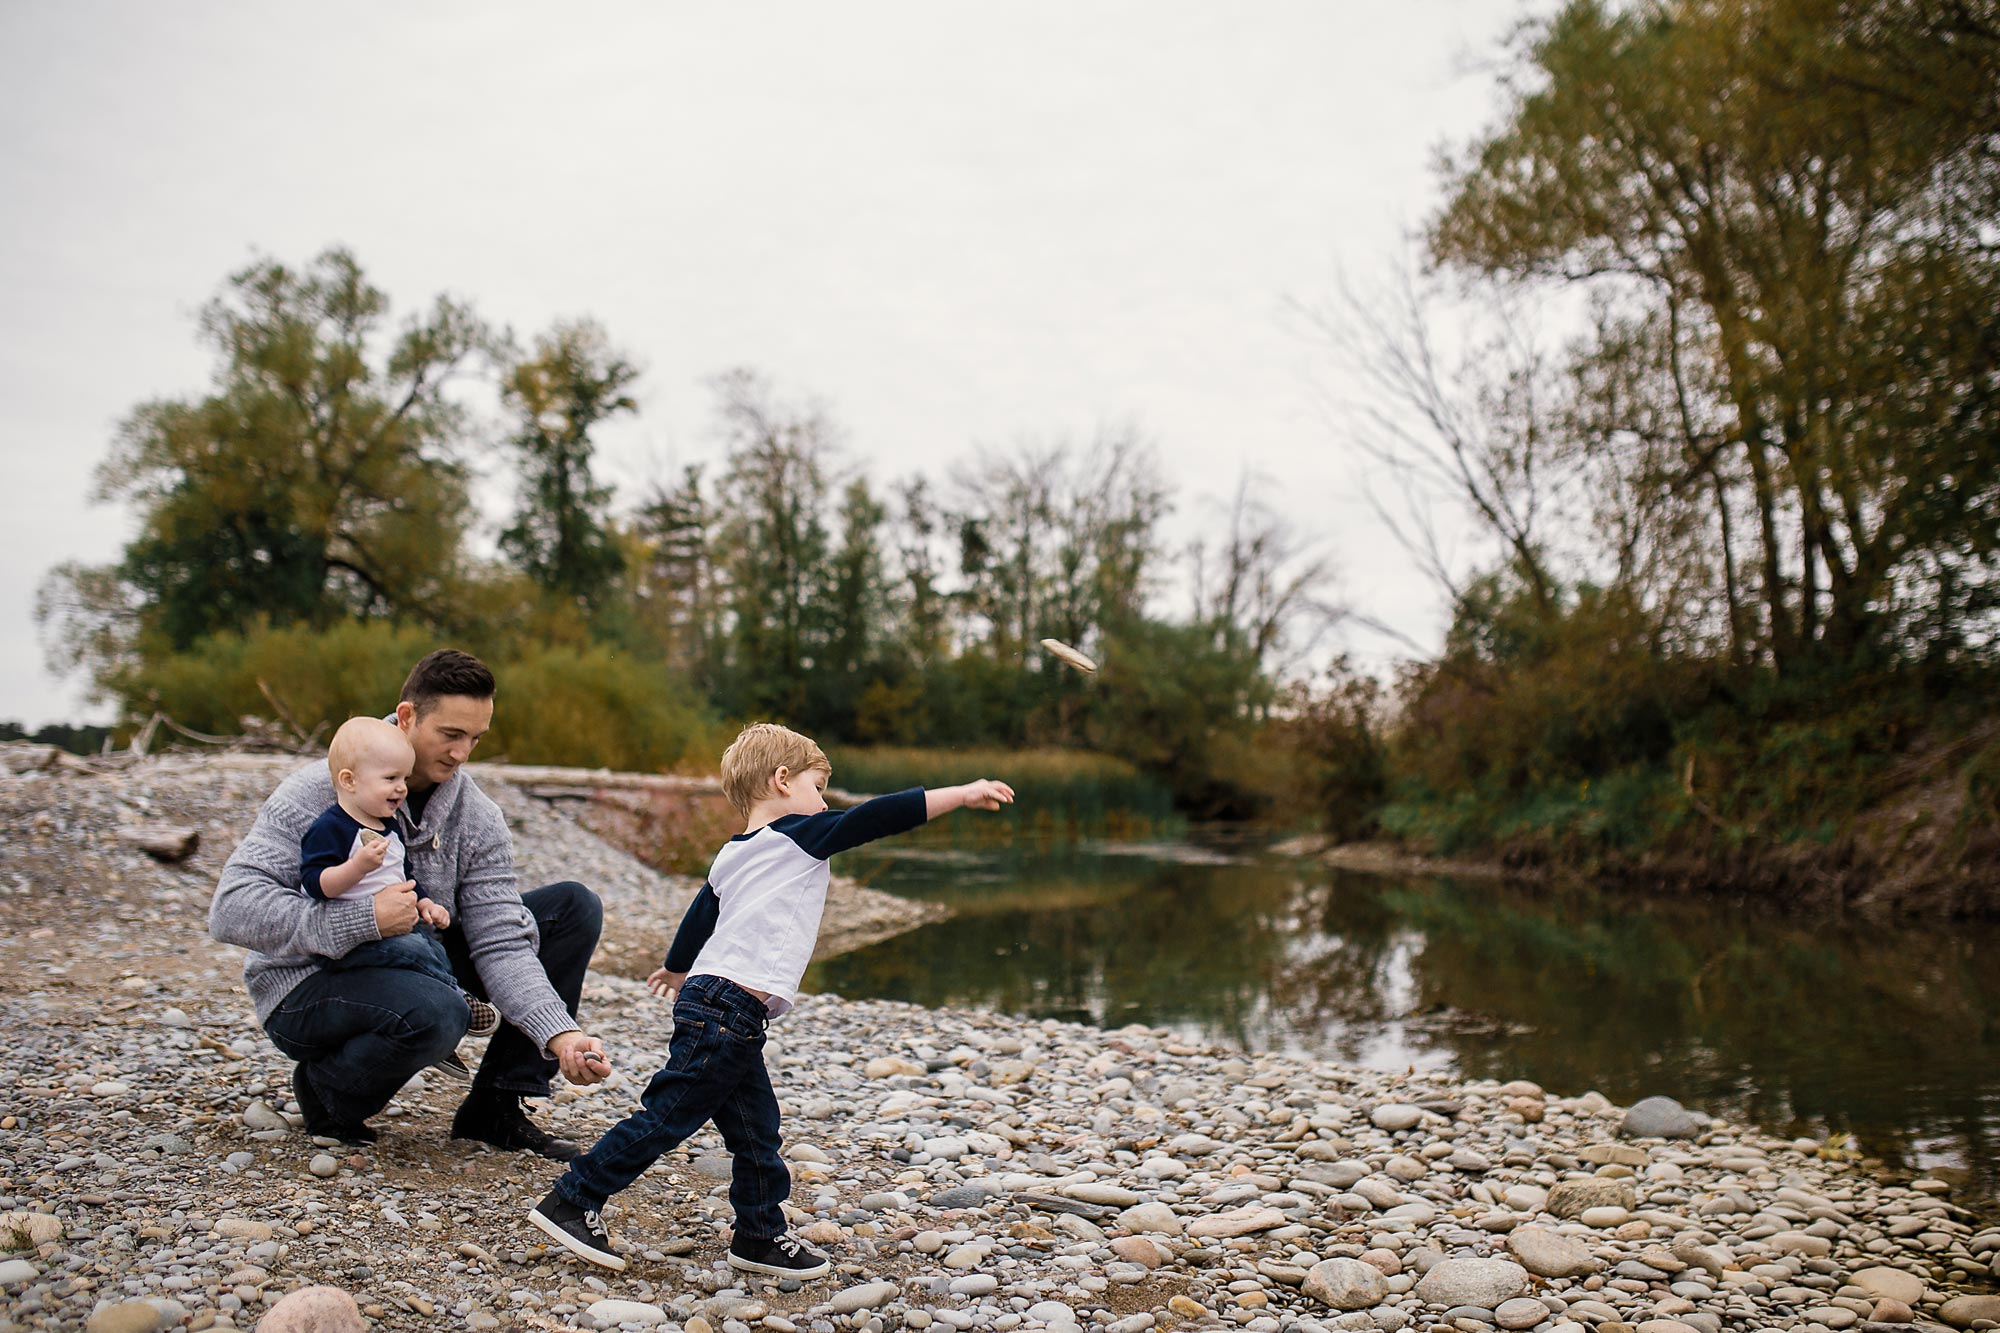 brothers throwing rocks in pond with dad